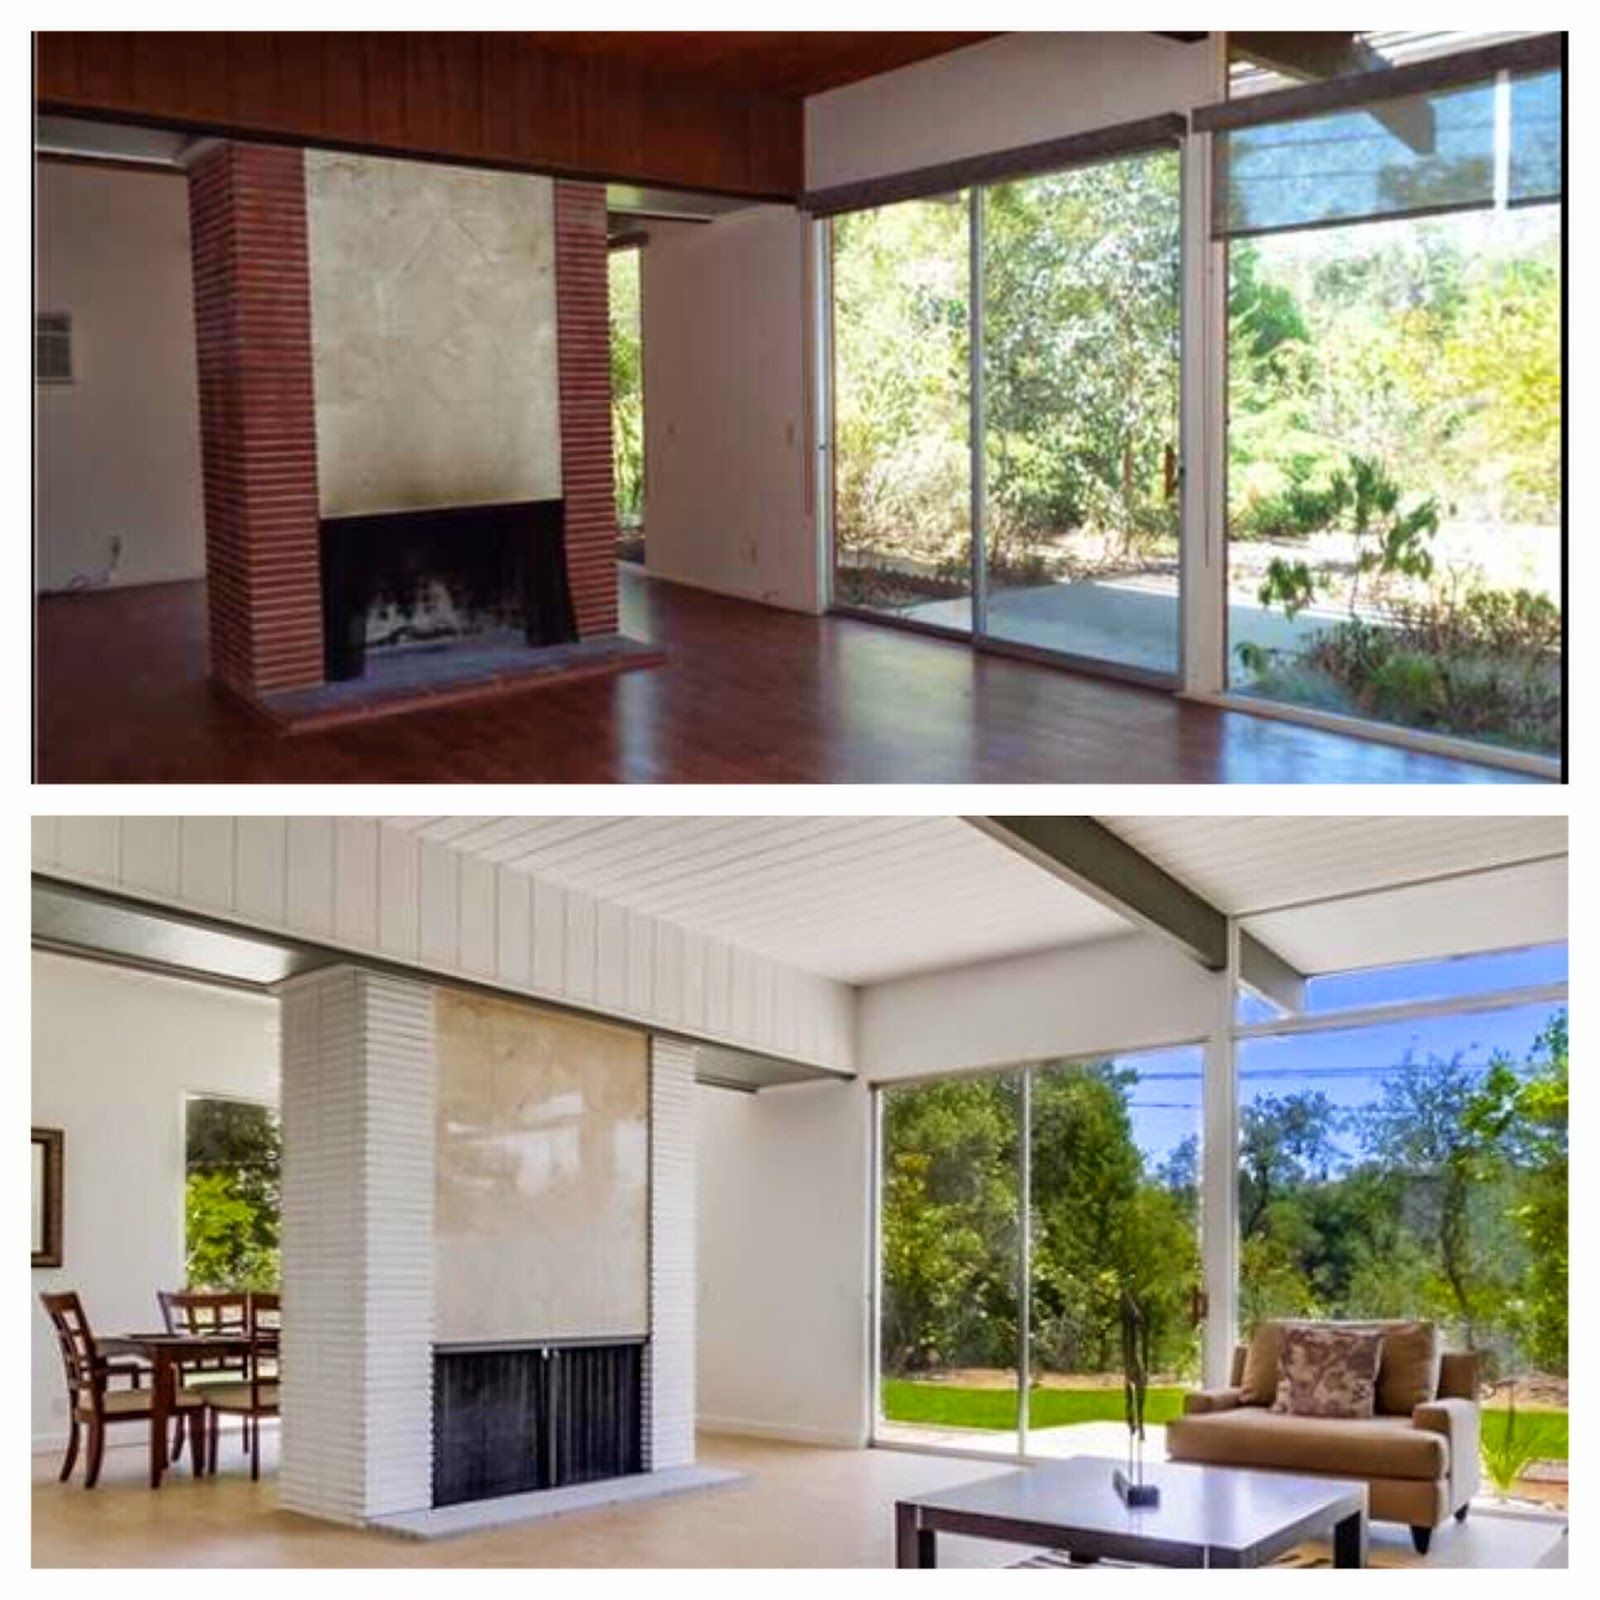 Living Room Make Over Painting Midcentury Modern Home Makeover Before & After  Living Room Make .